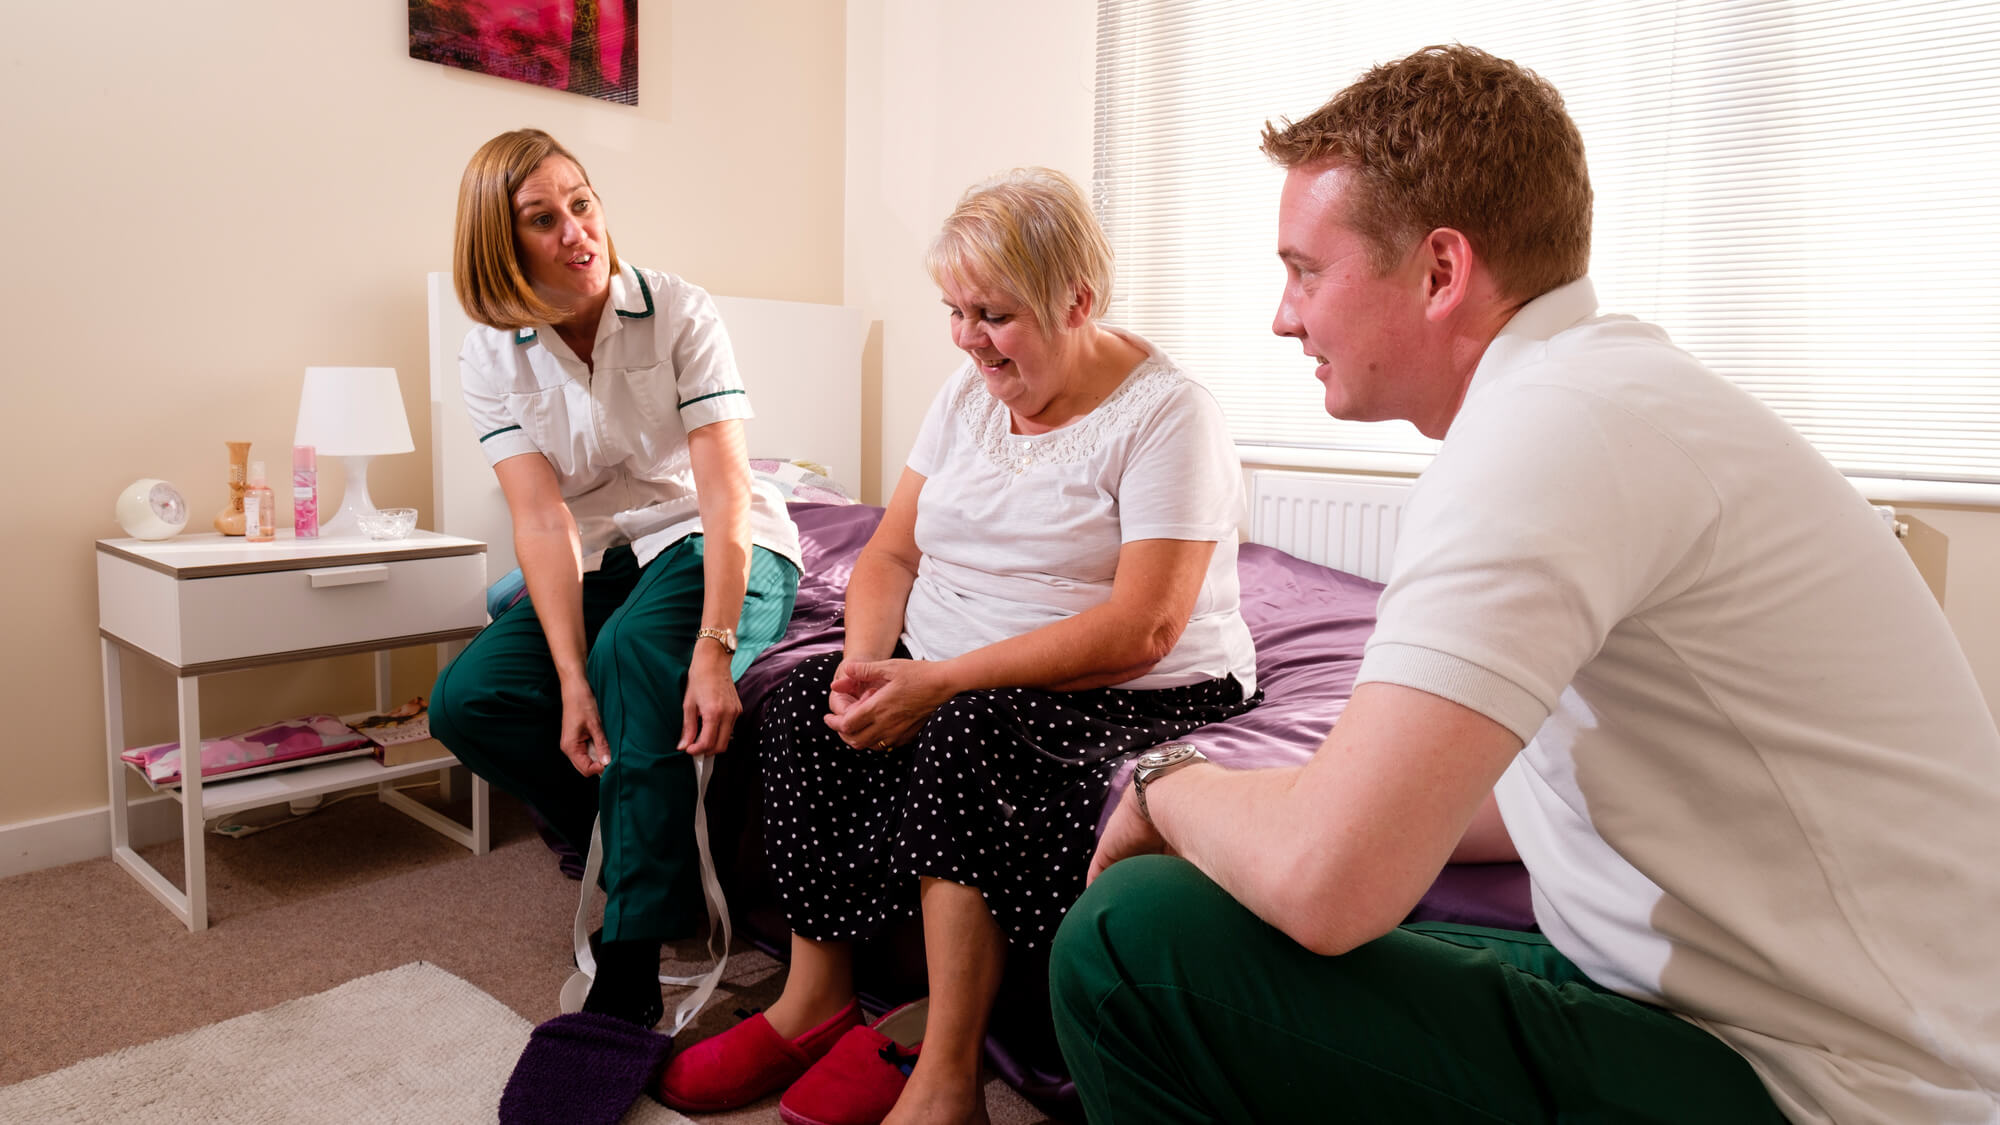 Students help patient in their home on a bed